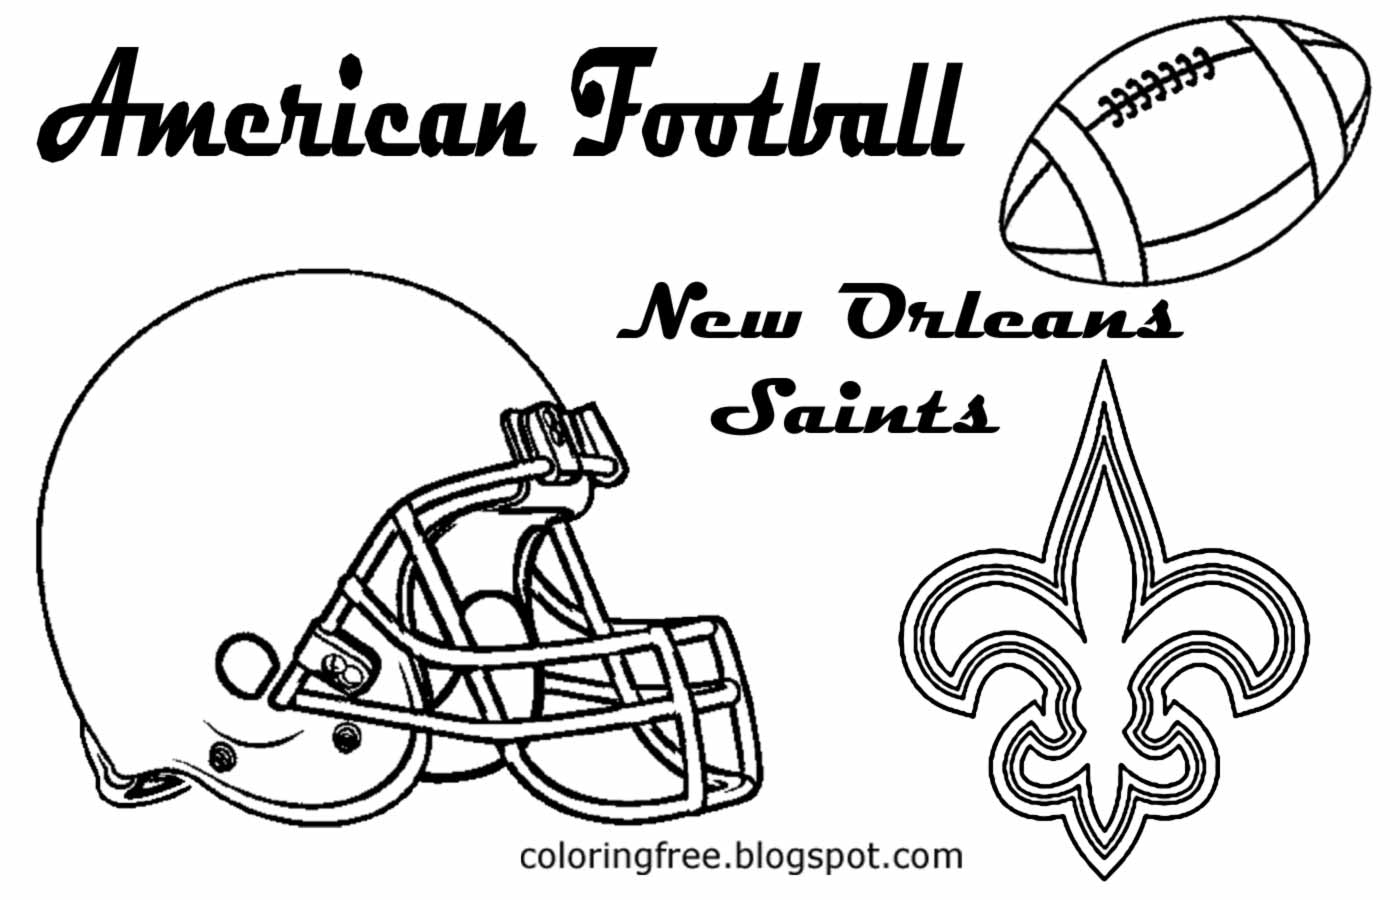 New Orleans Saints Coloring Pages To Print